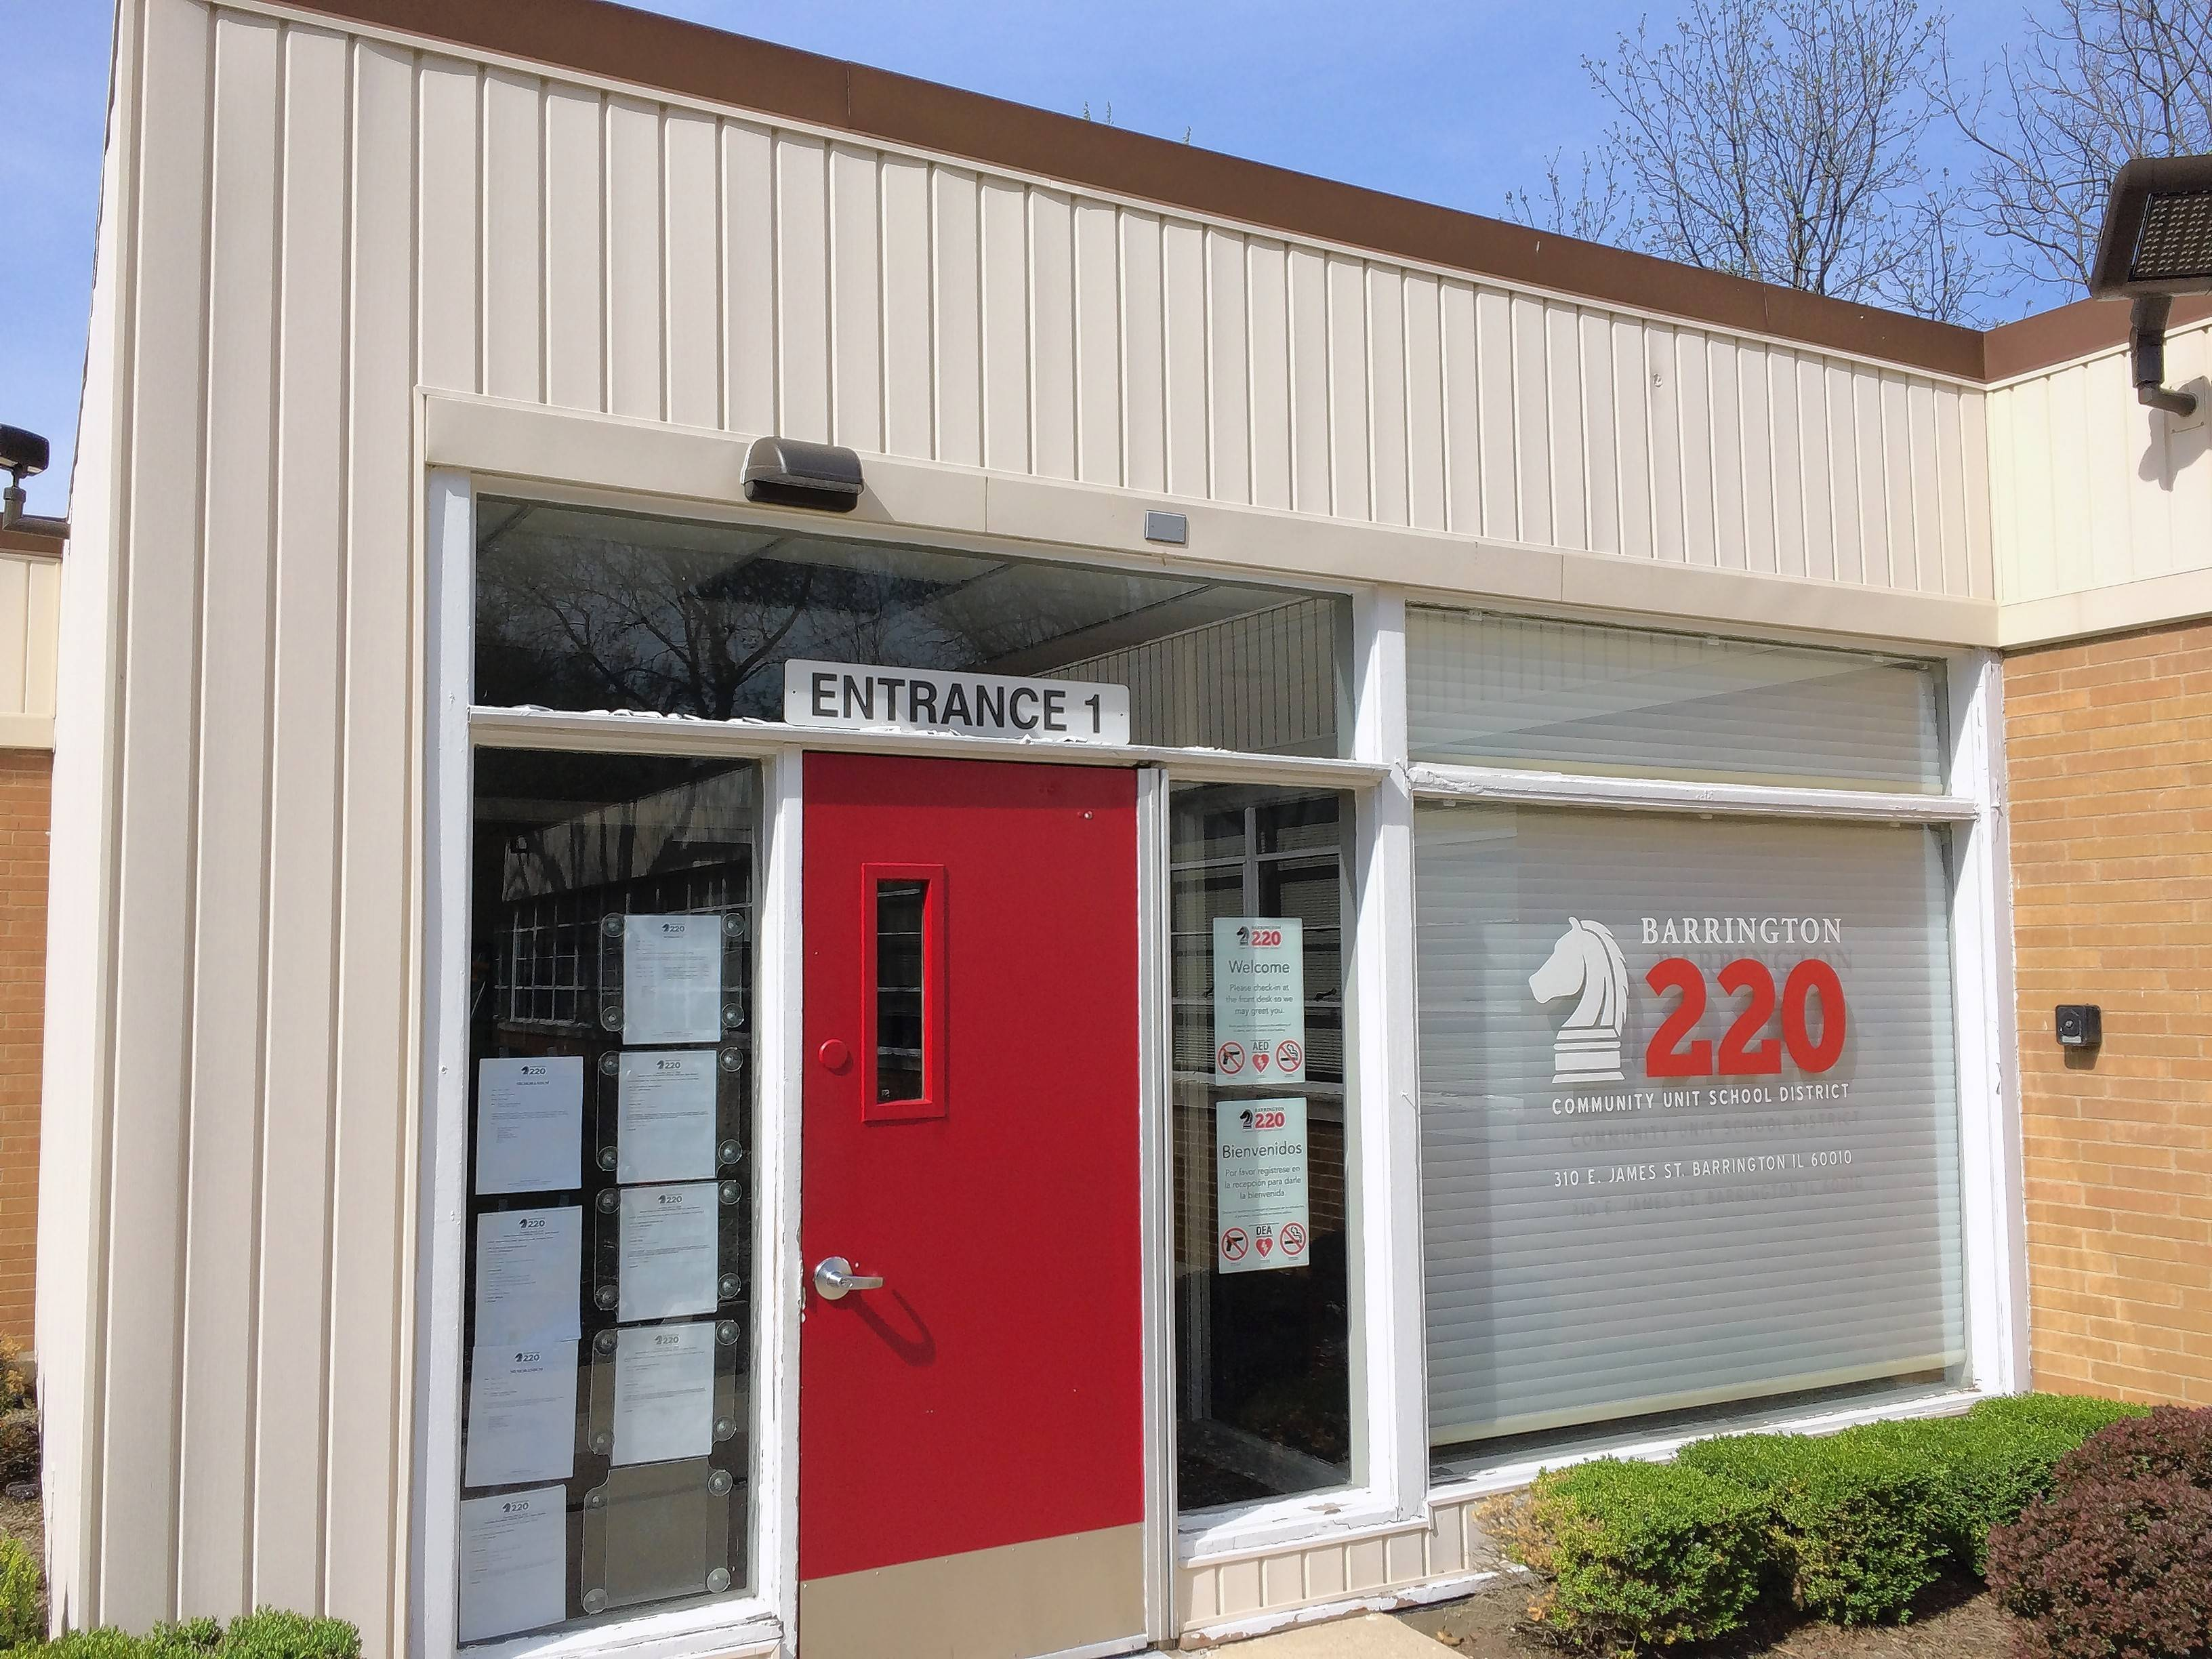 Barrington Area Unit District 220's central office on James Street in Barrington lacks parking and work space, officials said, which is why a new headquarters will be established in a former PepsiCo Inc. building on Main Street.